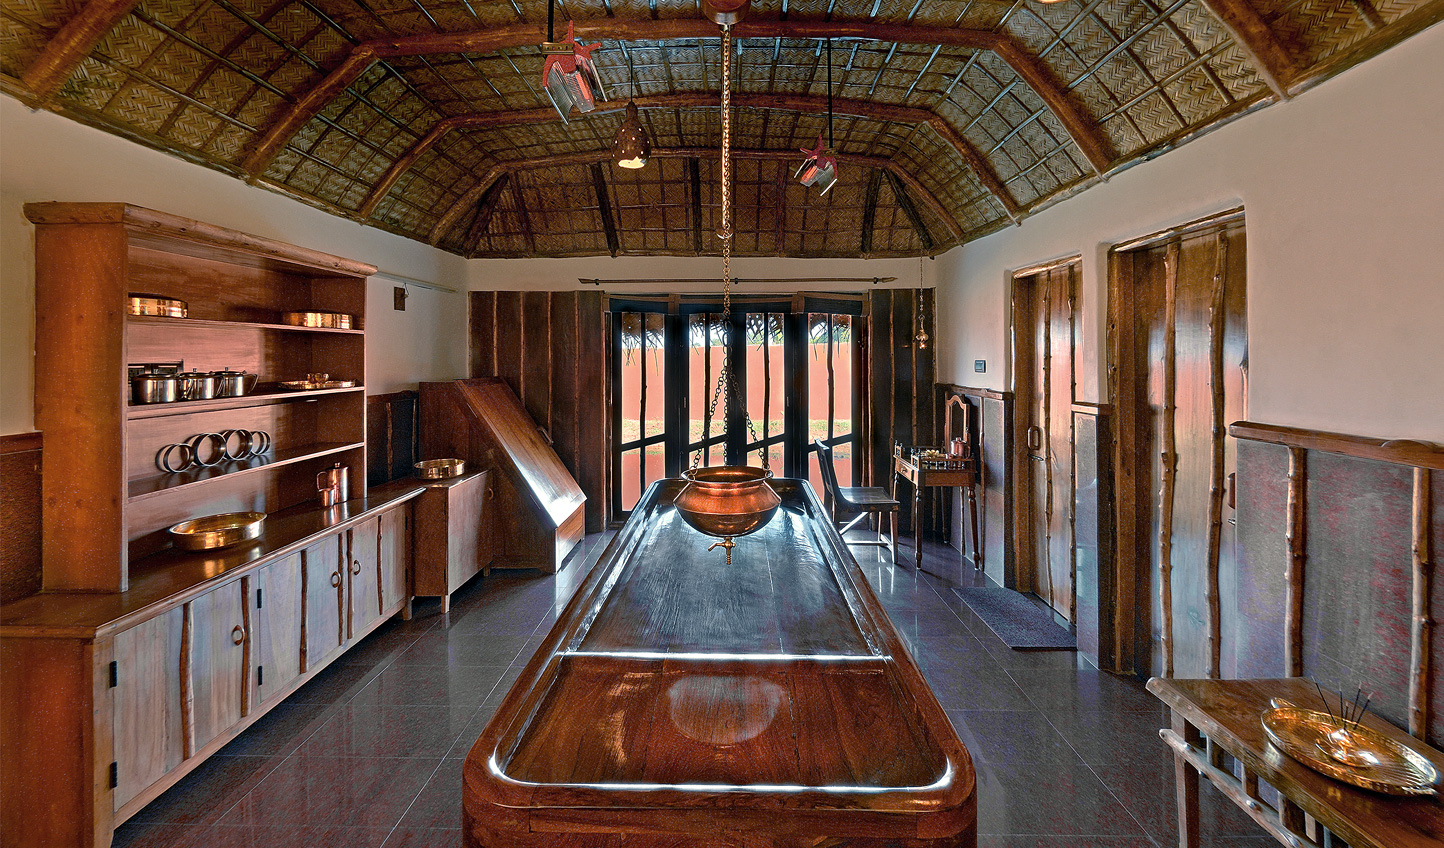 Ancient healing secrets are put to the test at Vaidysala Ayurvedic Village